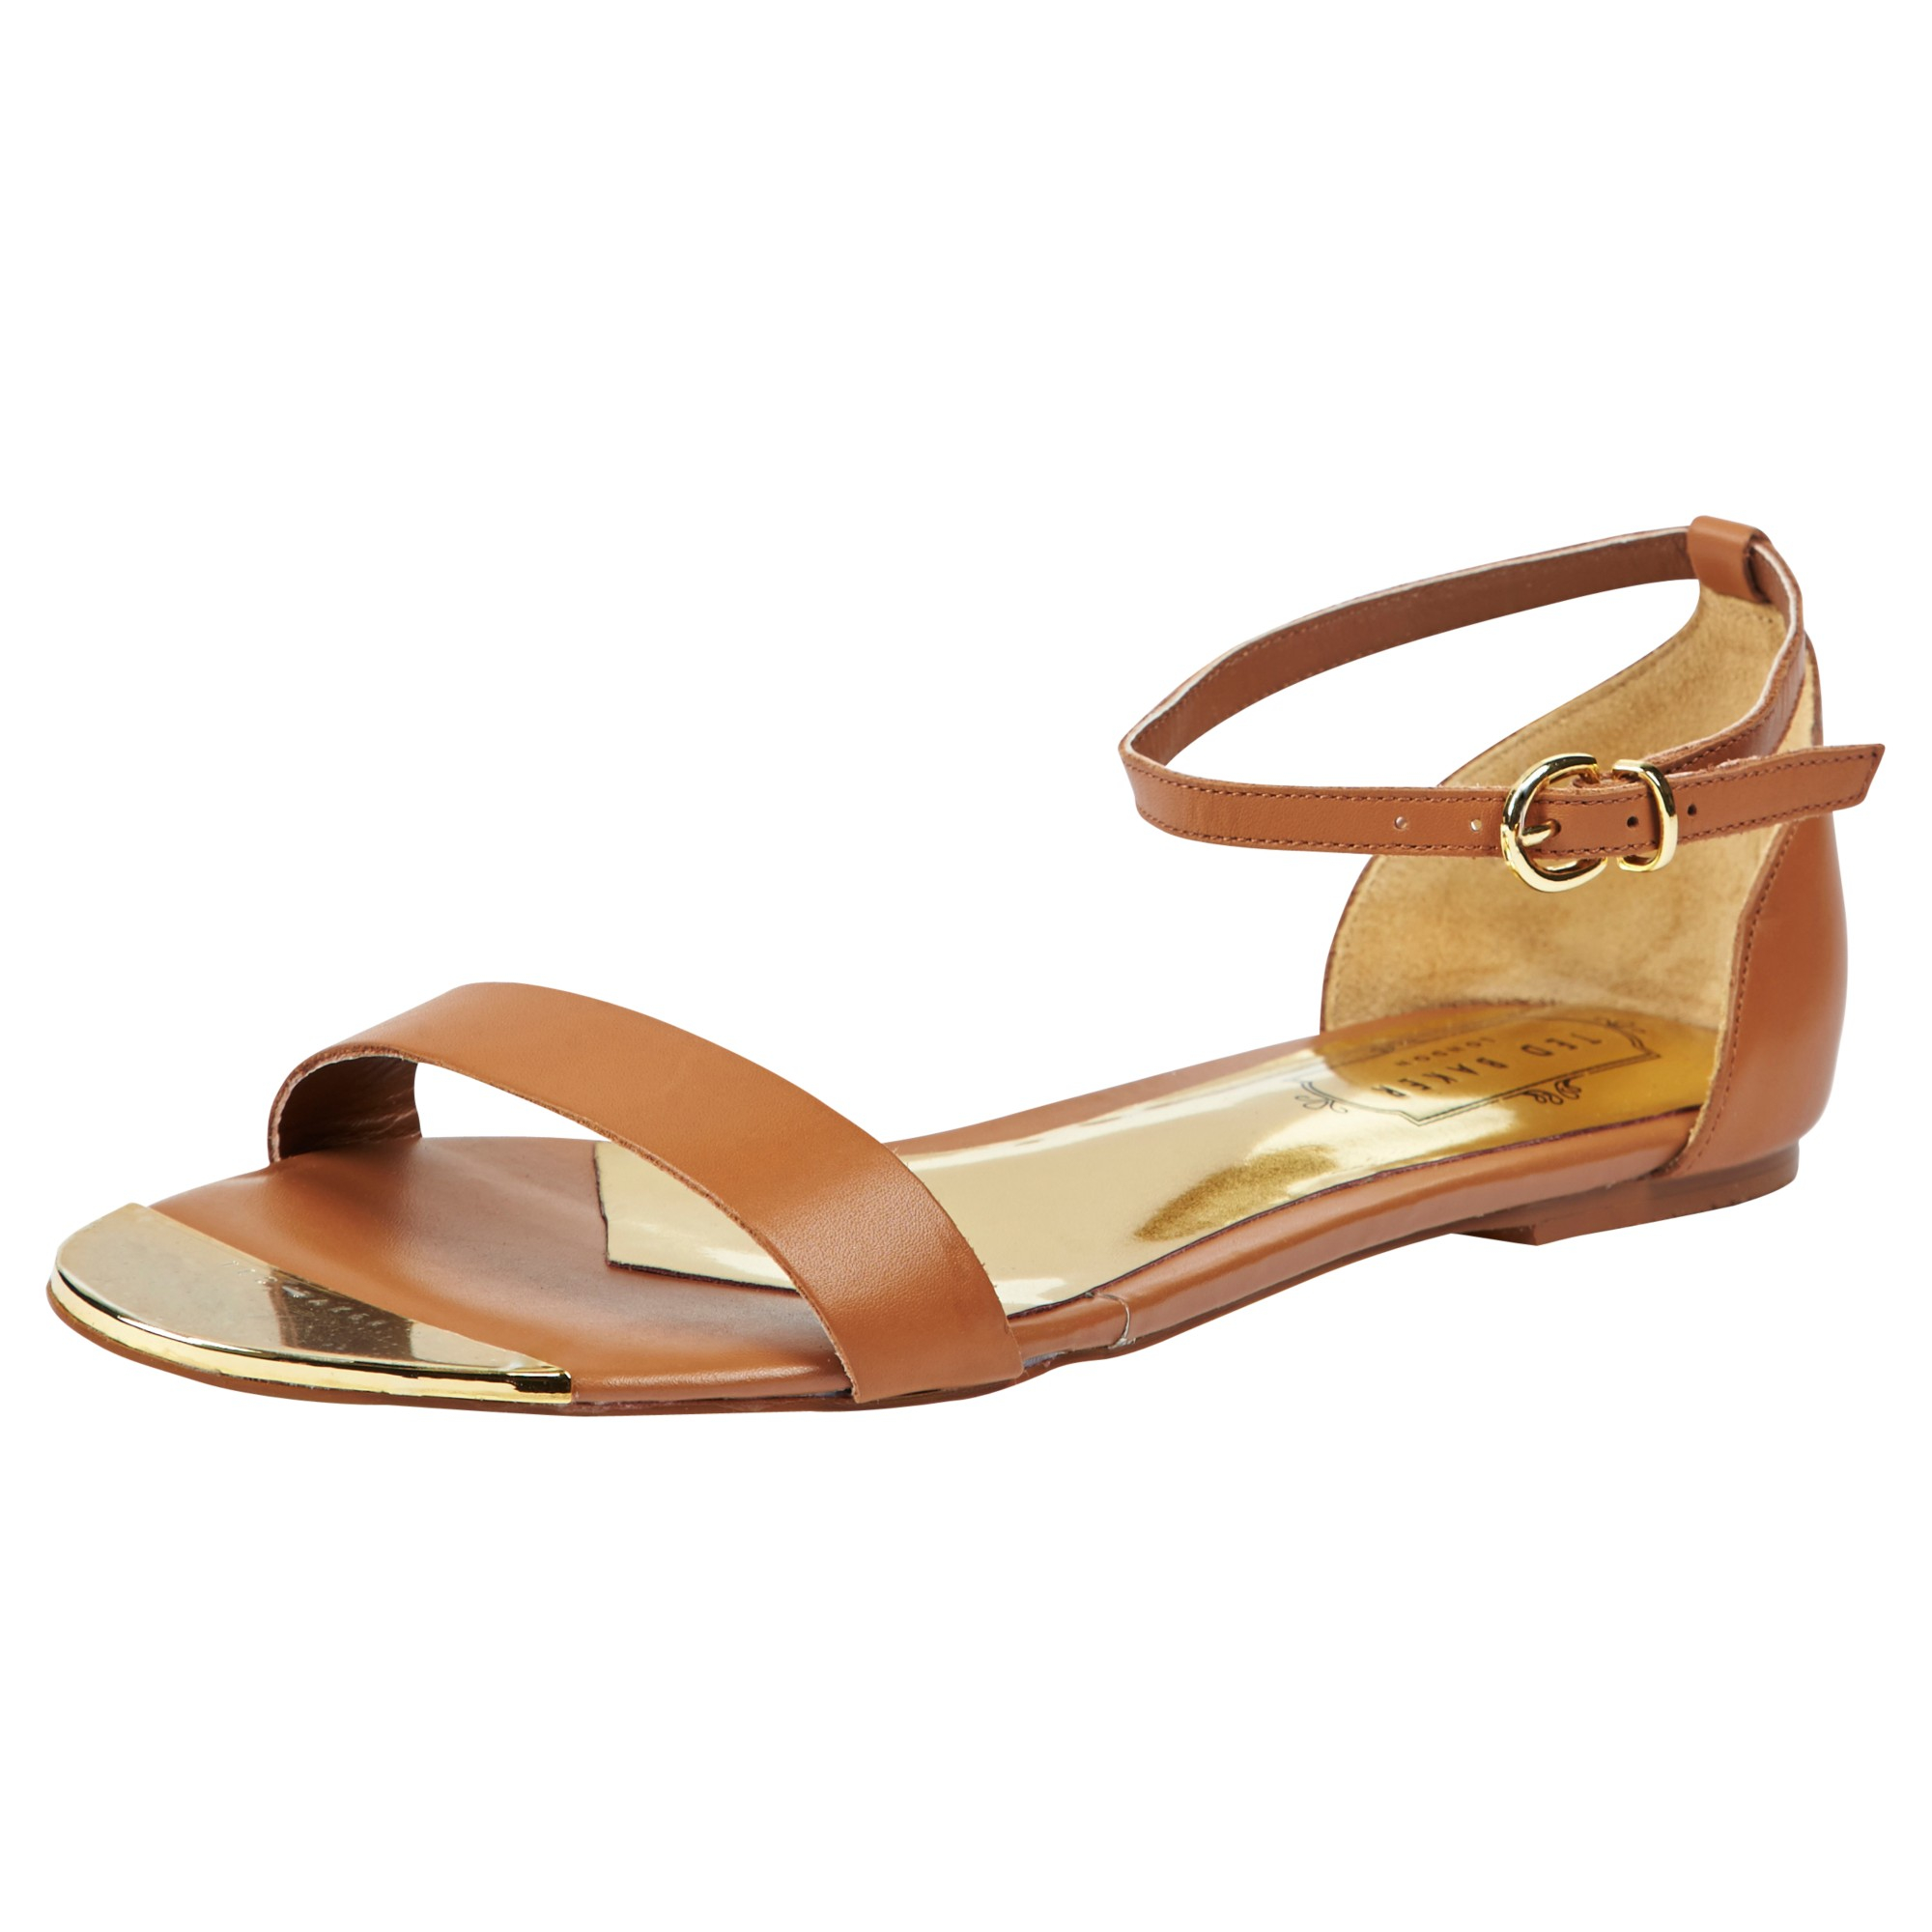 32510f168b3c0 Ted Baker Ballena Leather Sandals in Brown - Lyst